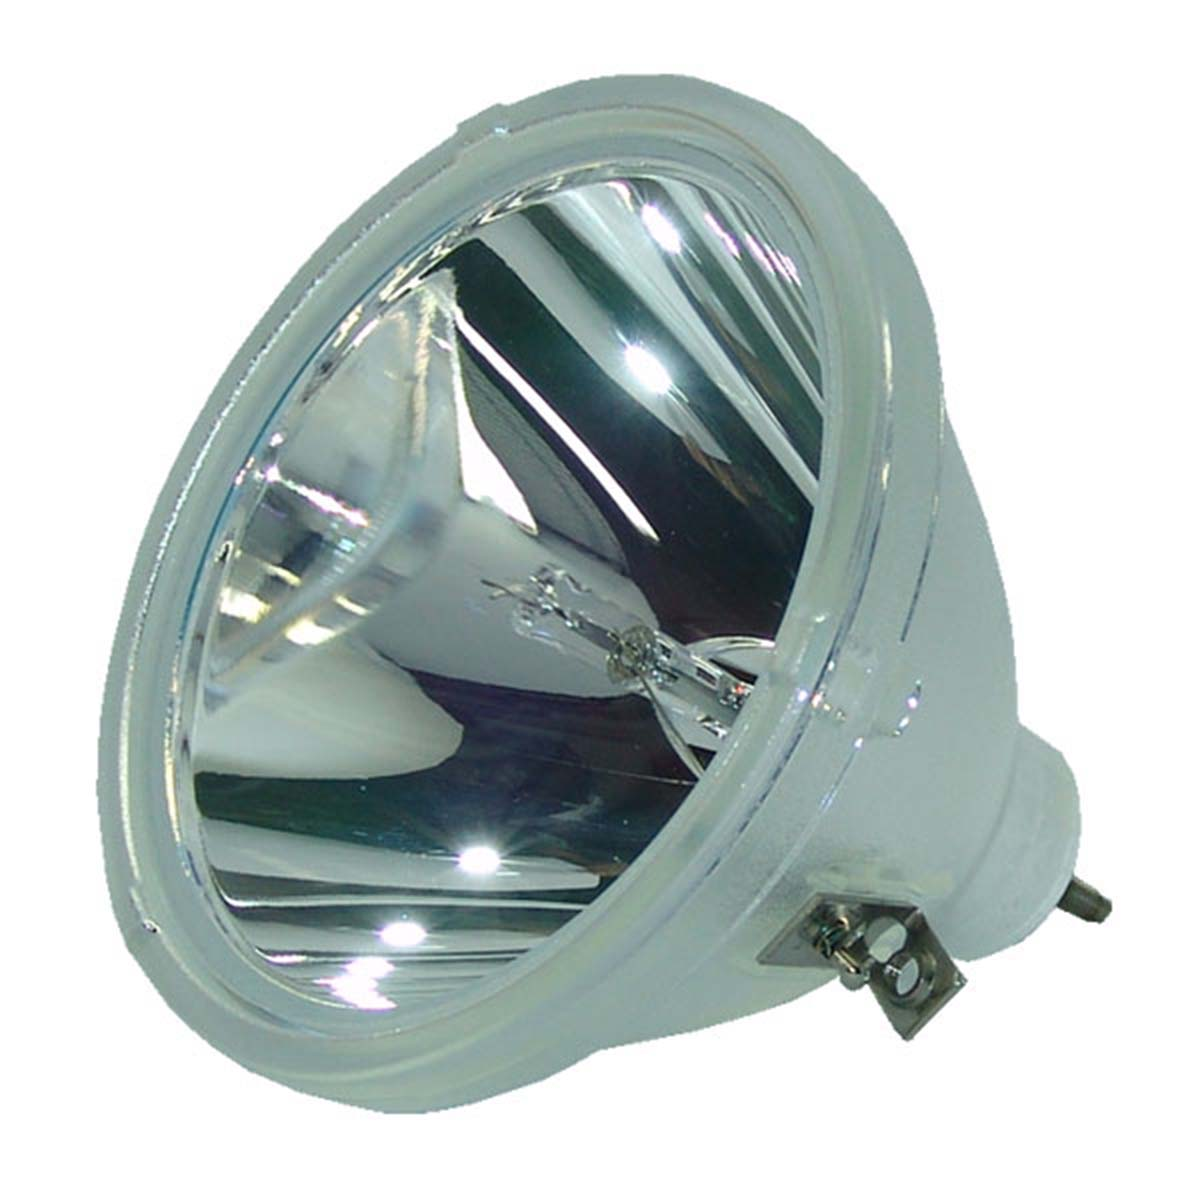 Osram Bare Lamp For Sony KF-60XBR800 / KF60XBR800 Project...